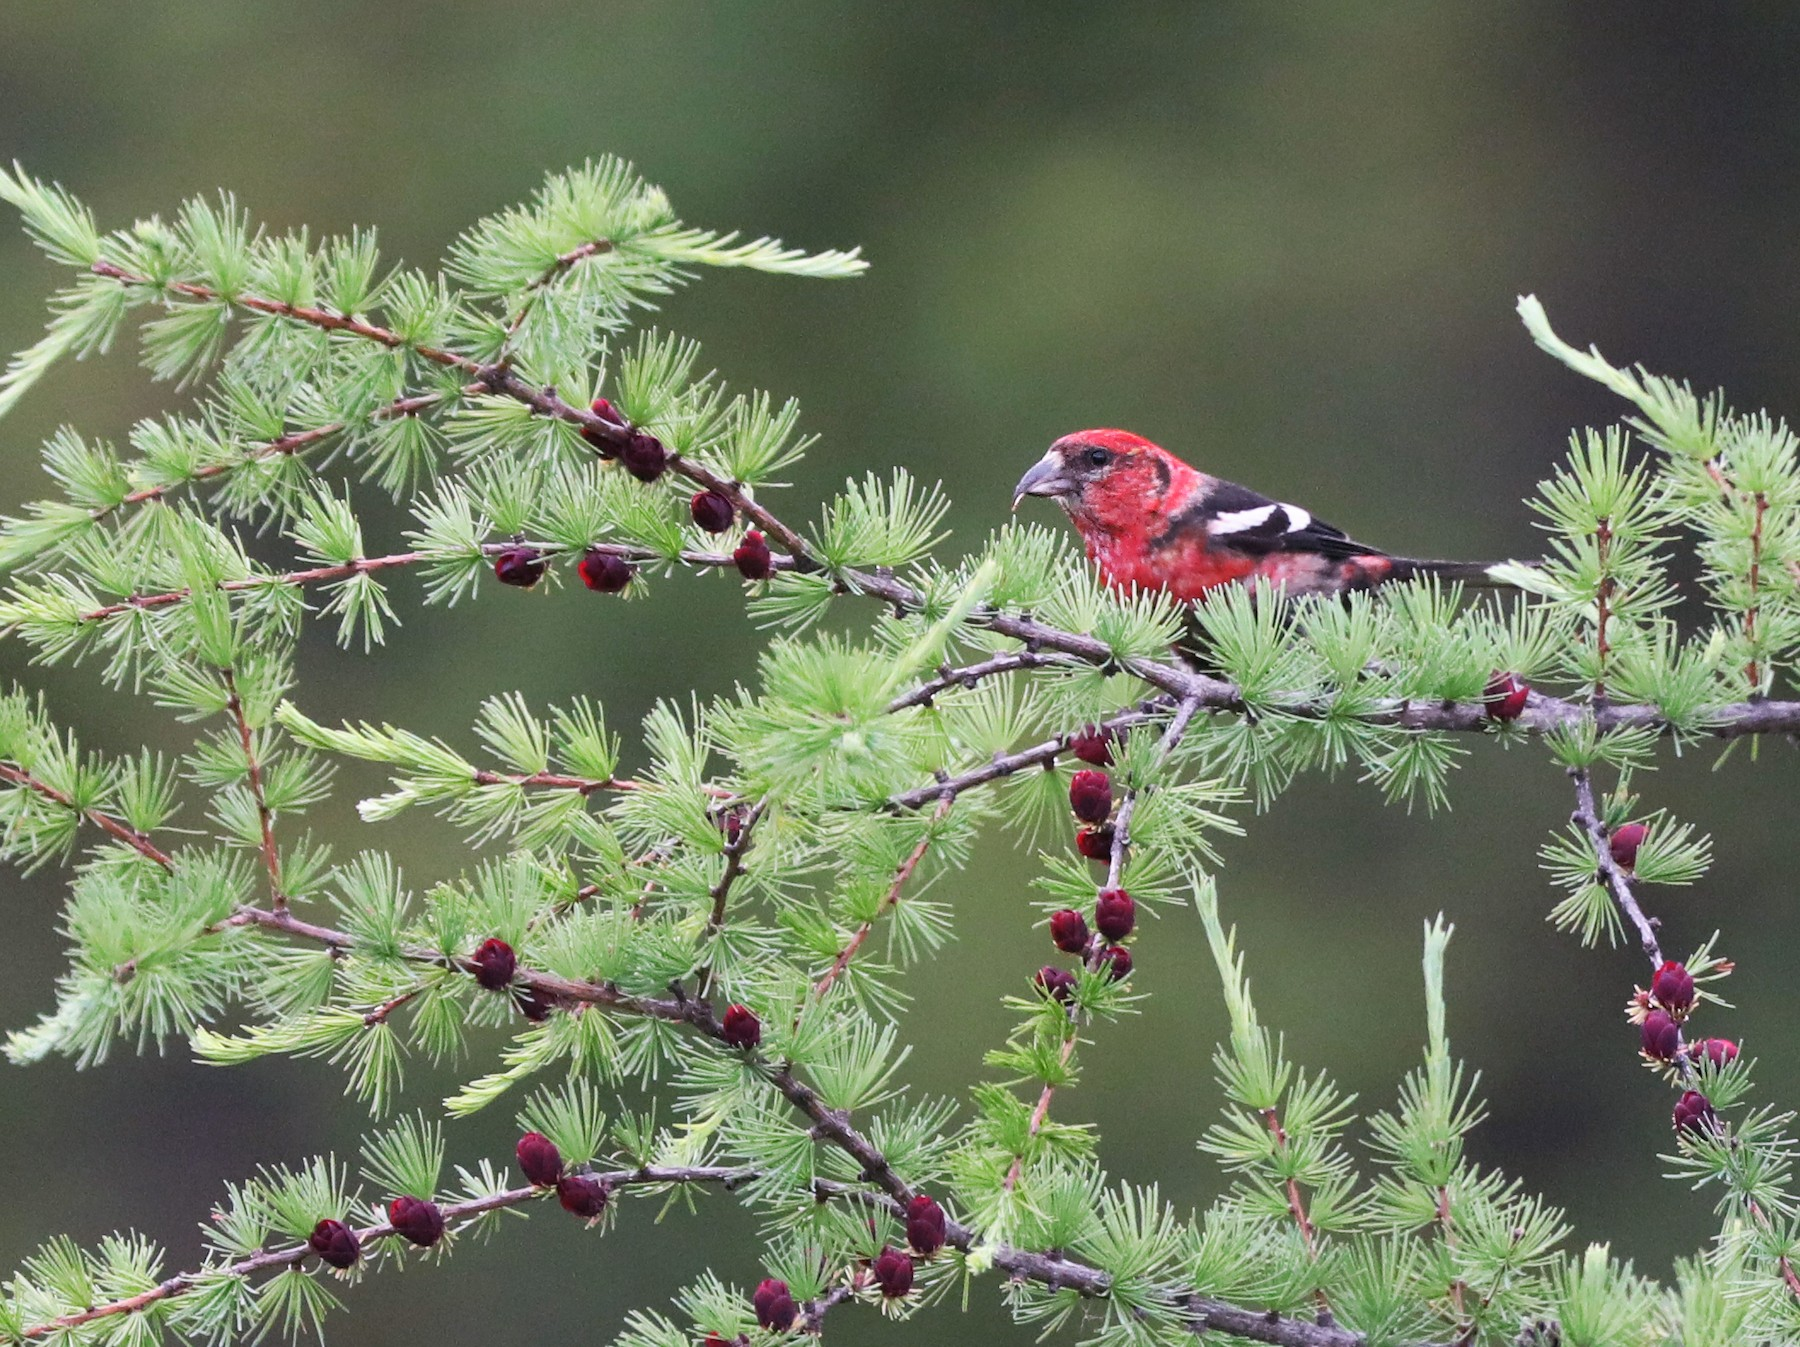 White-winged Crossbill - Daniel Jauvin